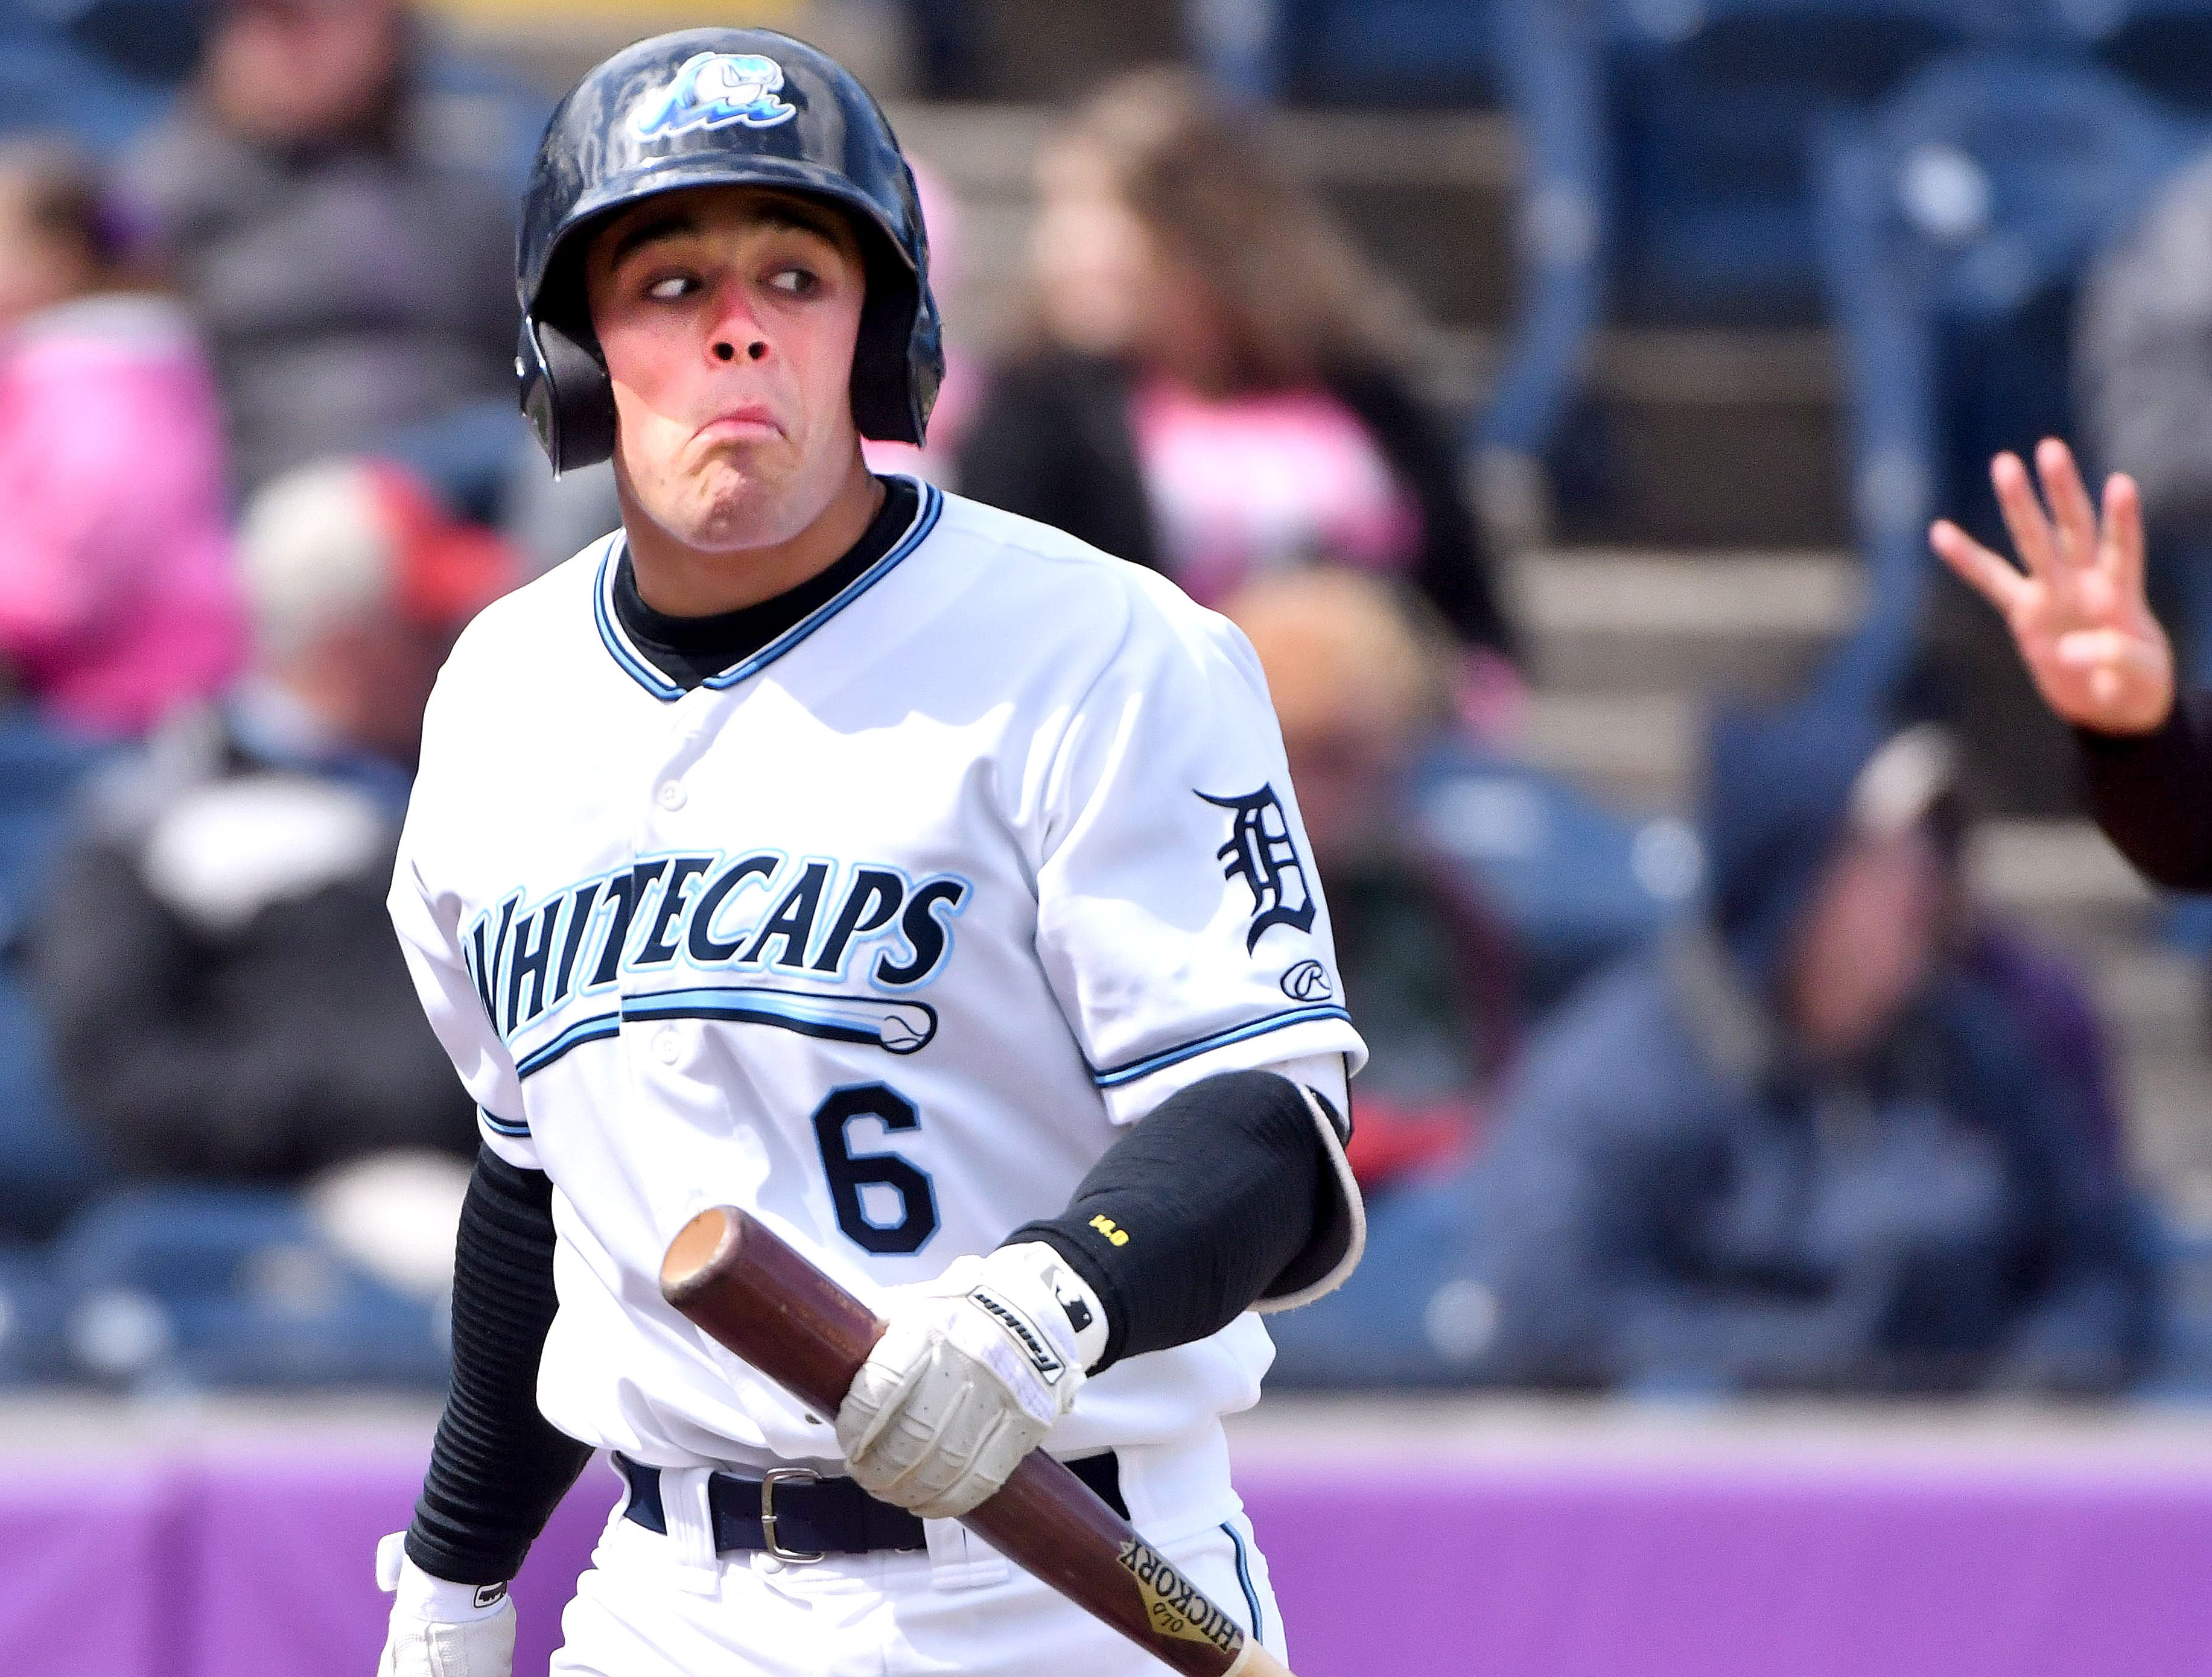 Catcher Brady Policelli makes faces after the umpire called him out on strikes as the West Michigan Whitecaps beat the Great Lakes Loons, 10-4, on April 10, 2018 at Fifth Third Bank ballpark in Grand Rapids.